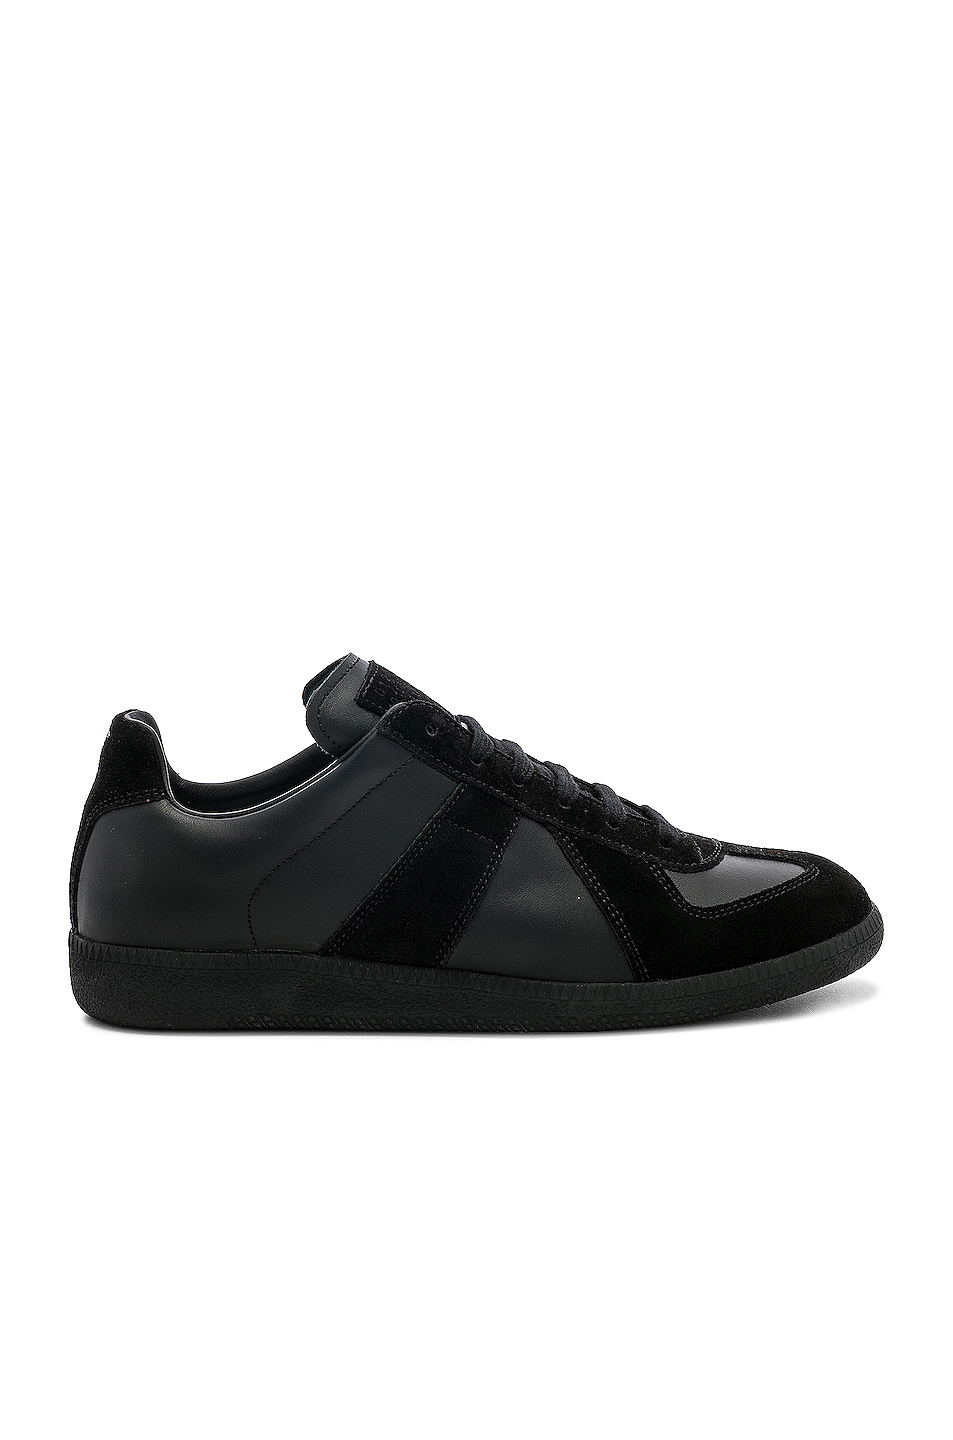 Maison Margiela Soft Leather & Velour Replica Sneakers in Black